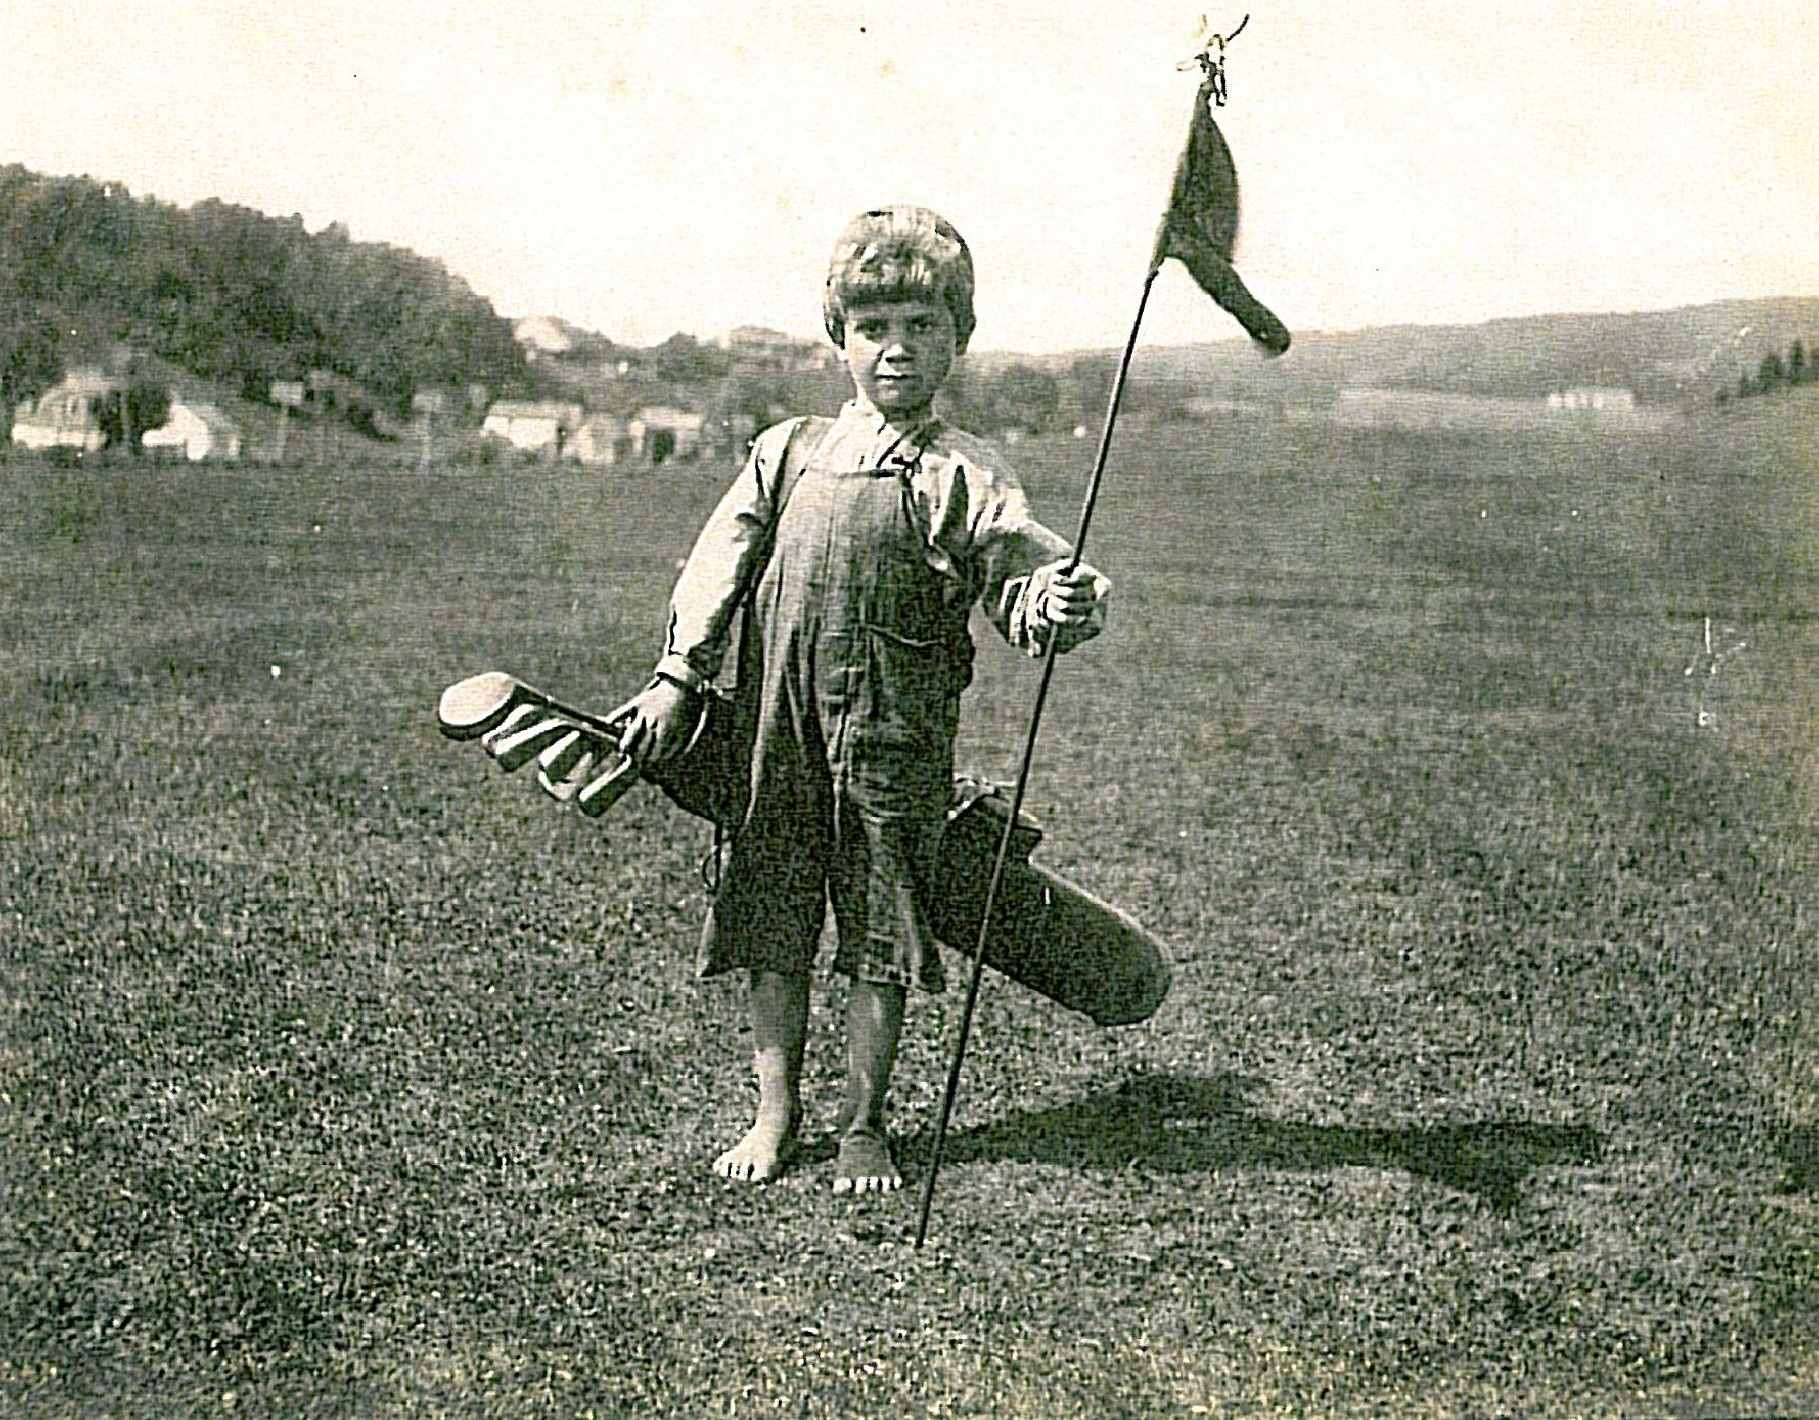 A barefoot child caddie, carrying a golf bag and holding a flag.